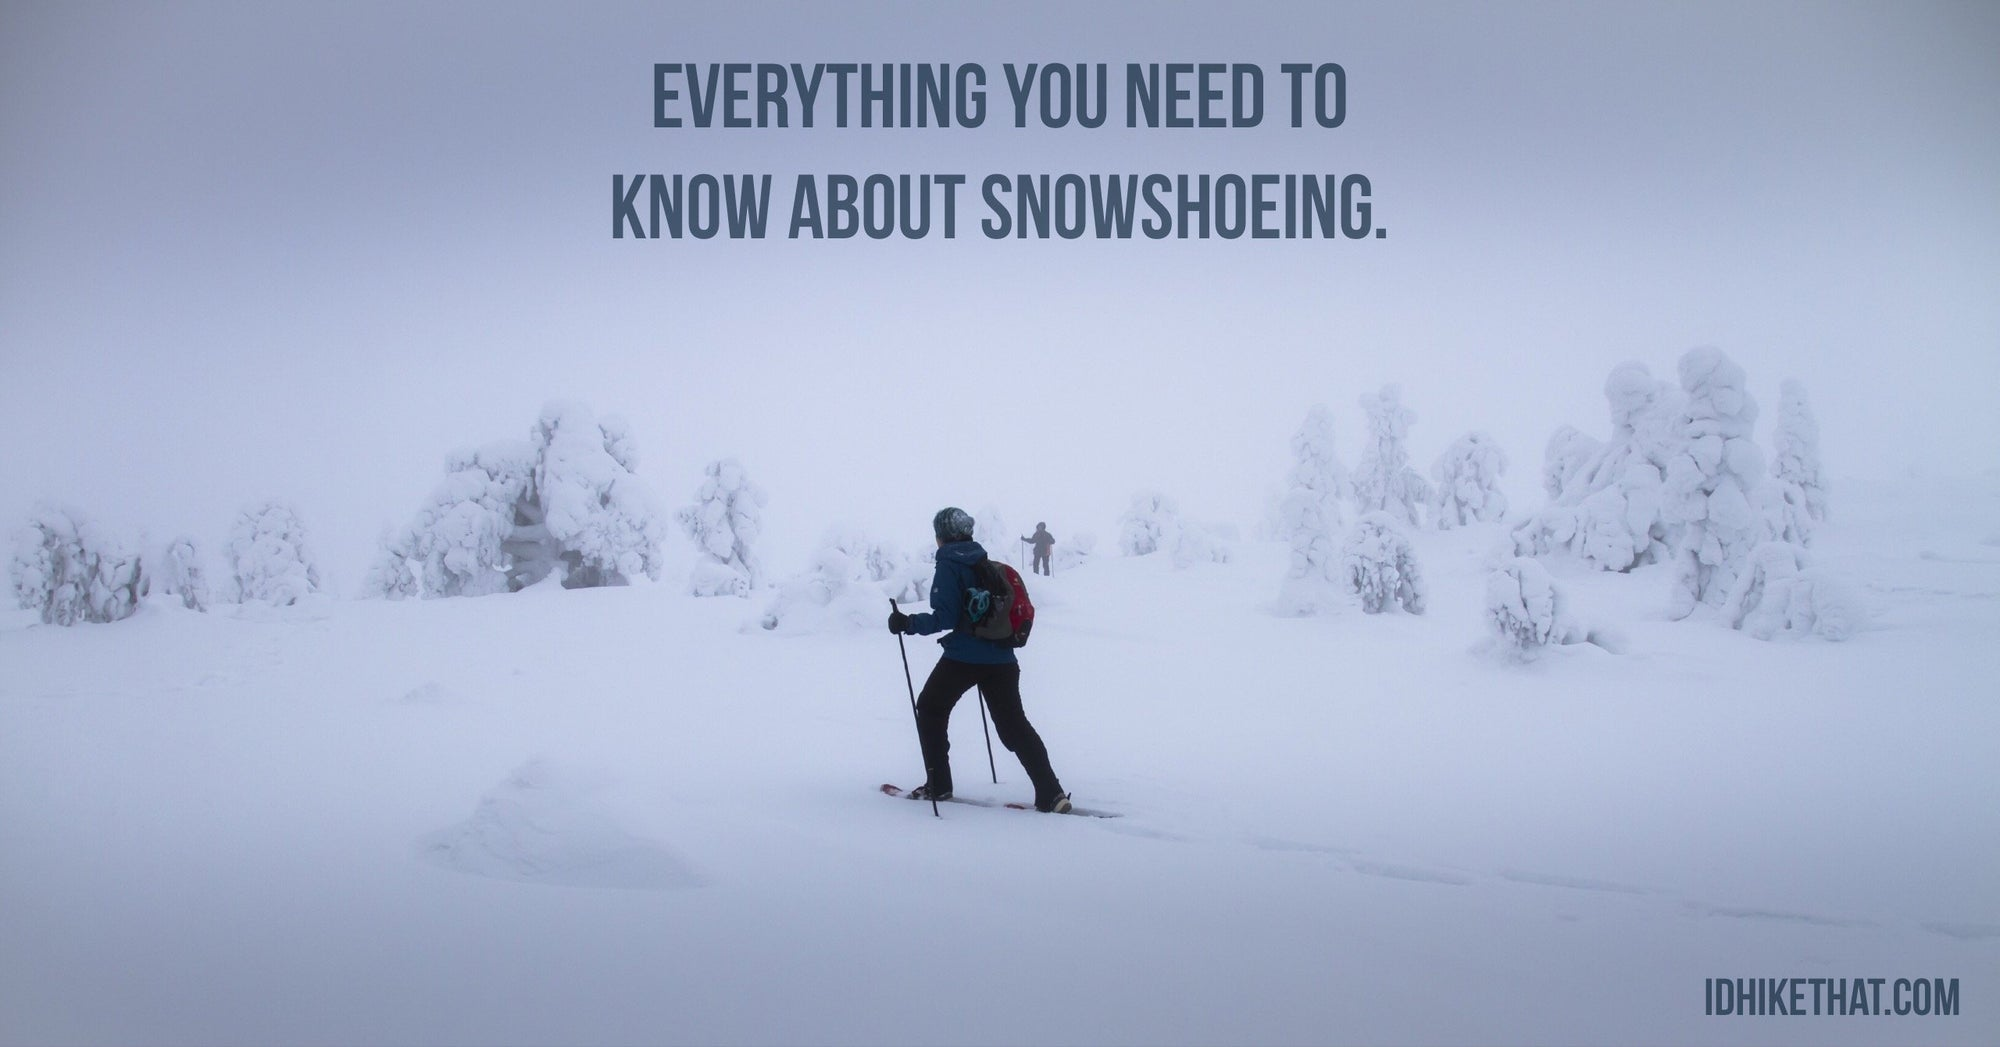 There is more to snowshoeing than people think. Find out what type of snowshoes and gear you need to have before hitting the trails.